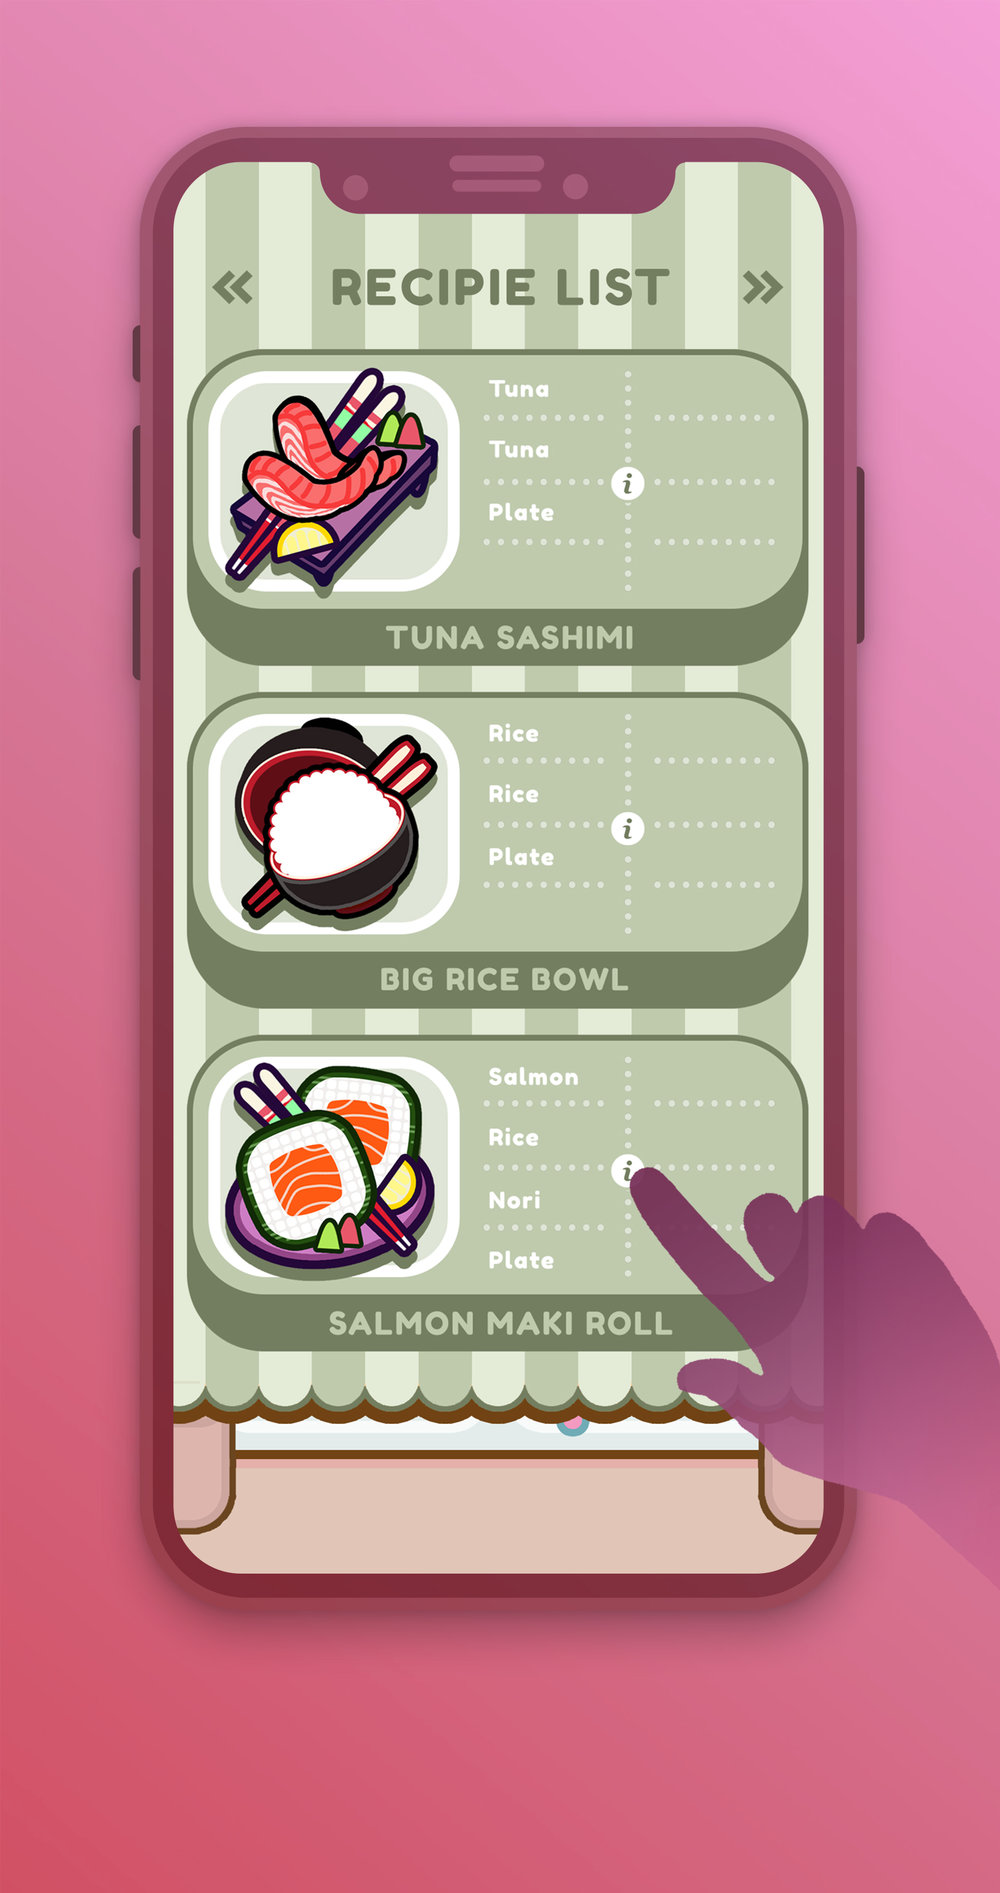 COOK ITCook up a storm of ICONIC DISHES from all across the globe! You might even end up playing with a couple that you DIDN'T KNOW.  We might be partial to starting with JAPAN for now, but we intend to make this a WORLD FOOD TOUR!     -